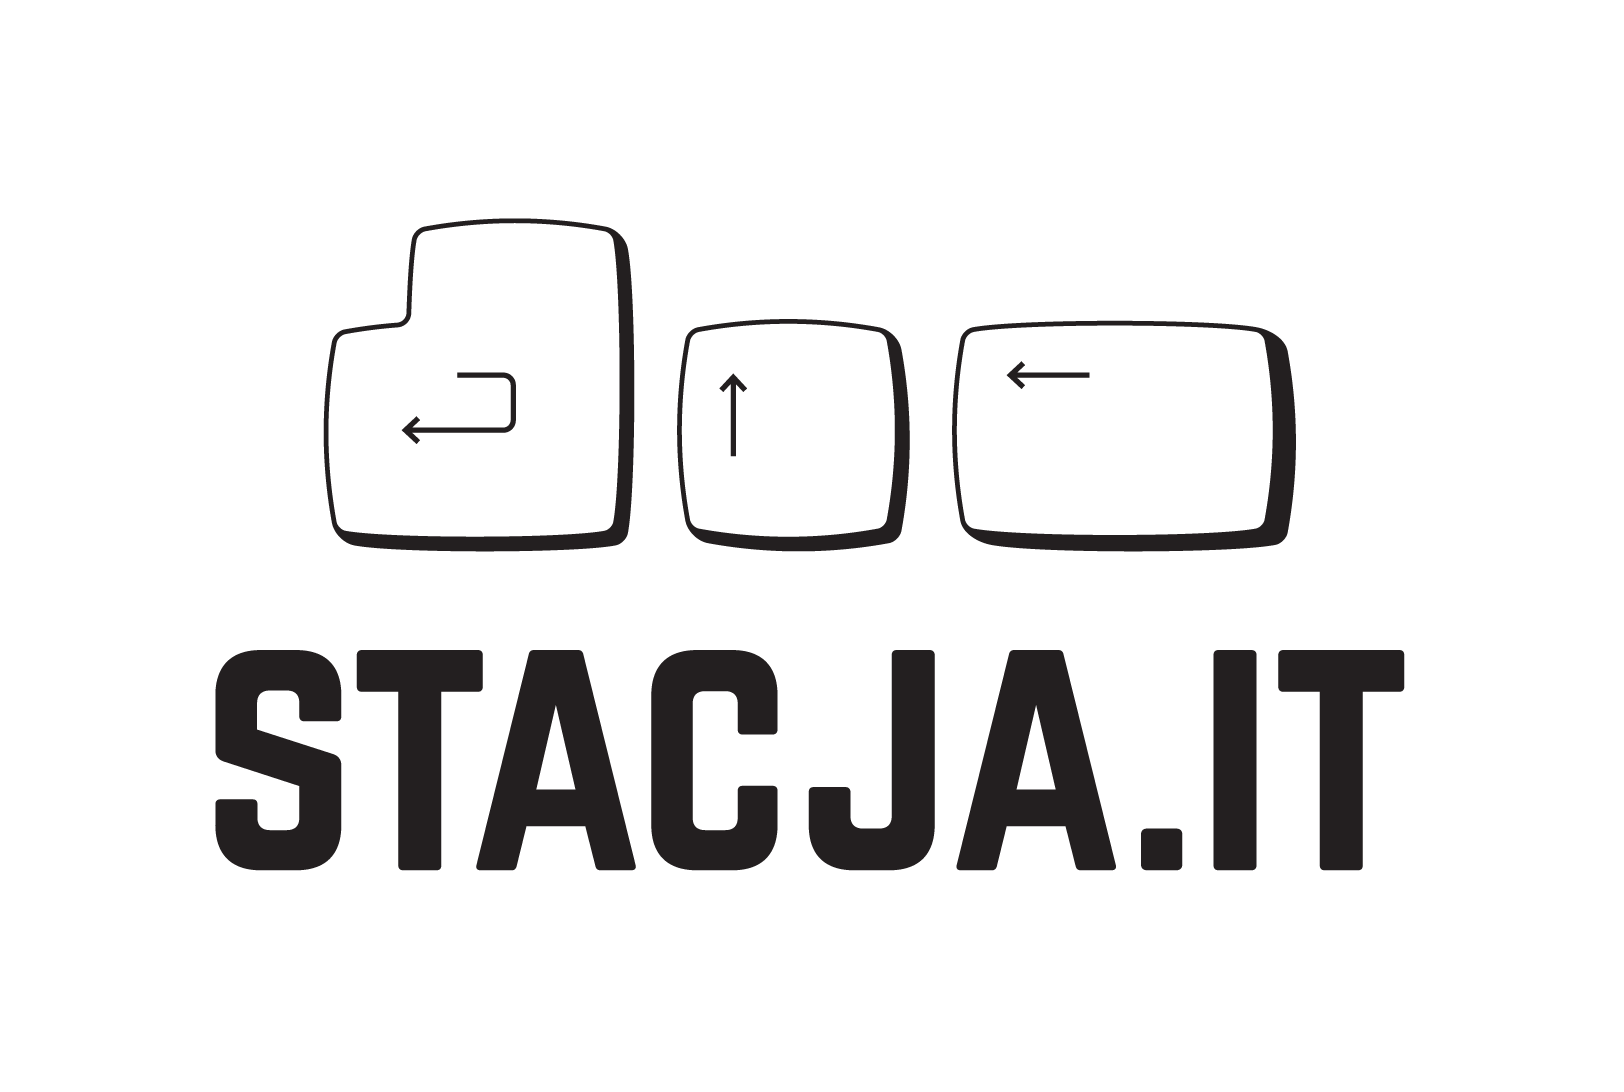 Stacja IT